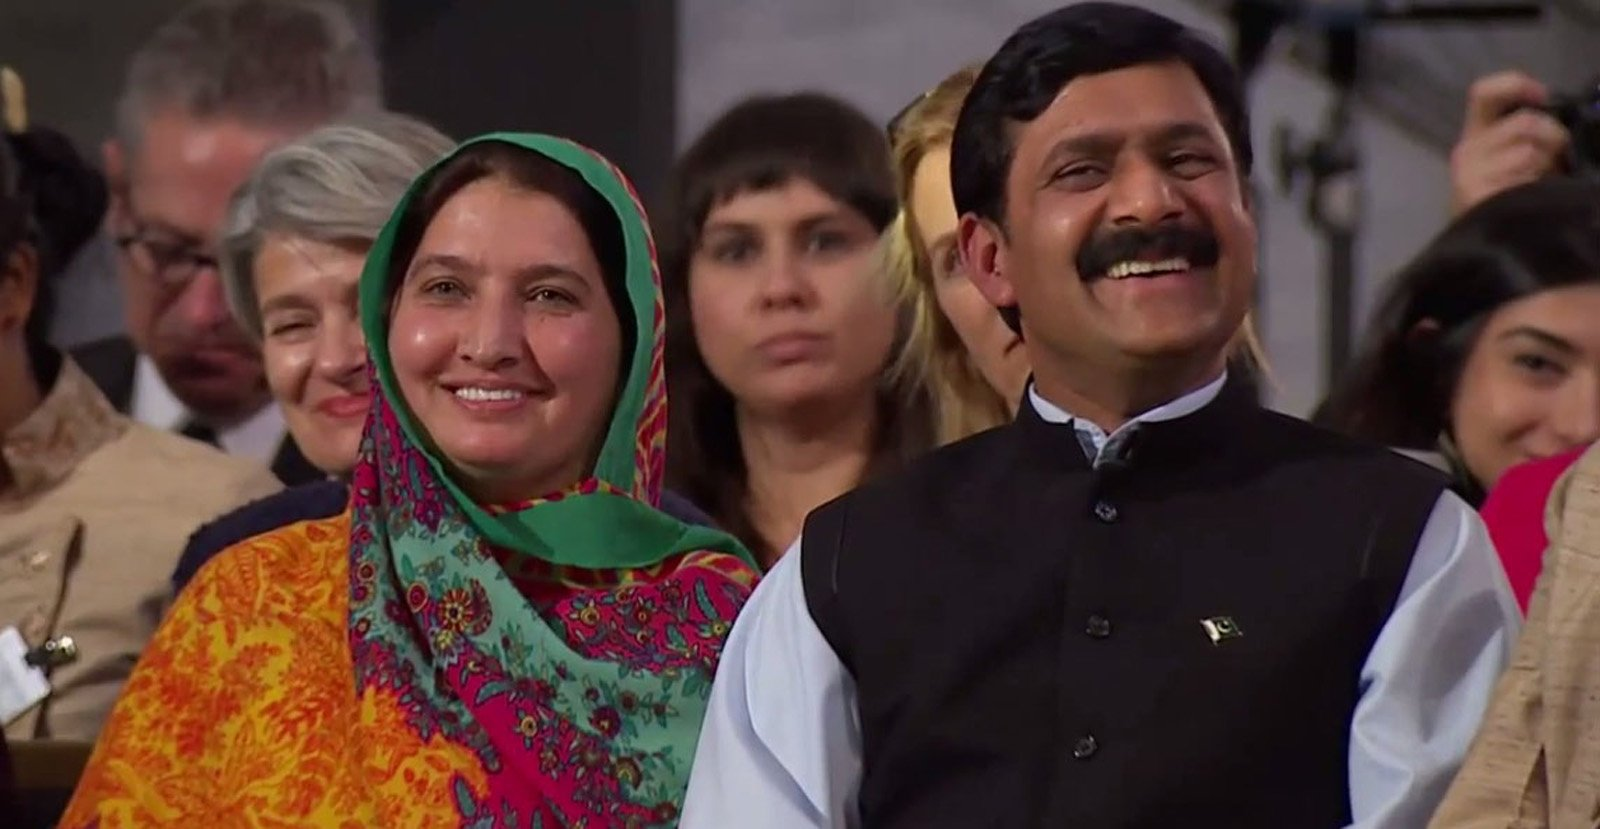 What makes Toor Pekai to get upset with Malala? Read a rare ...